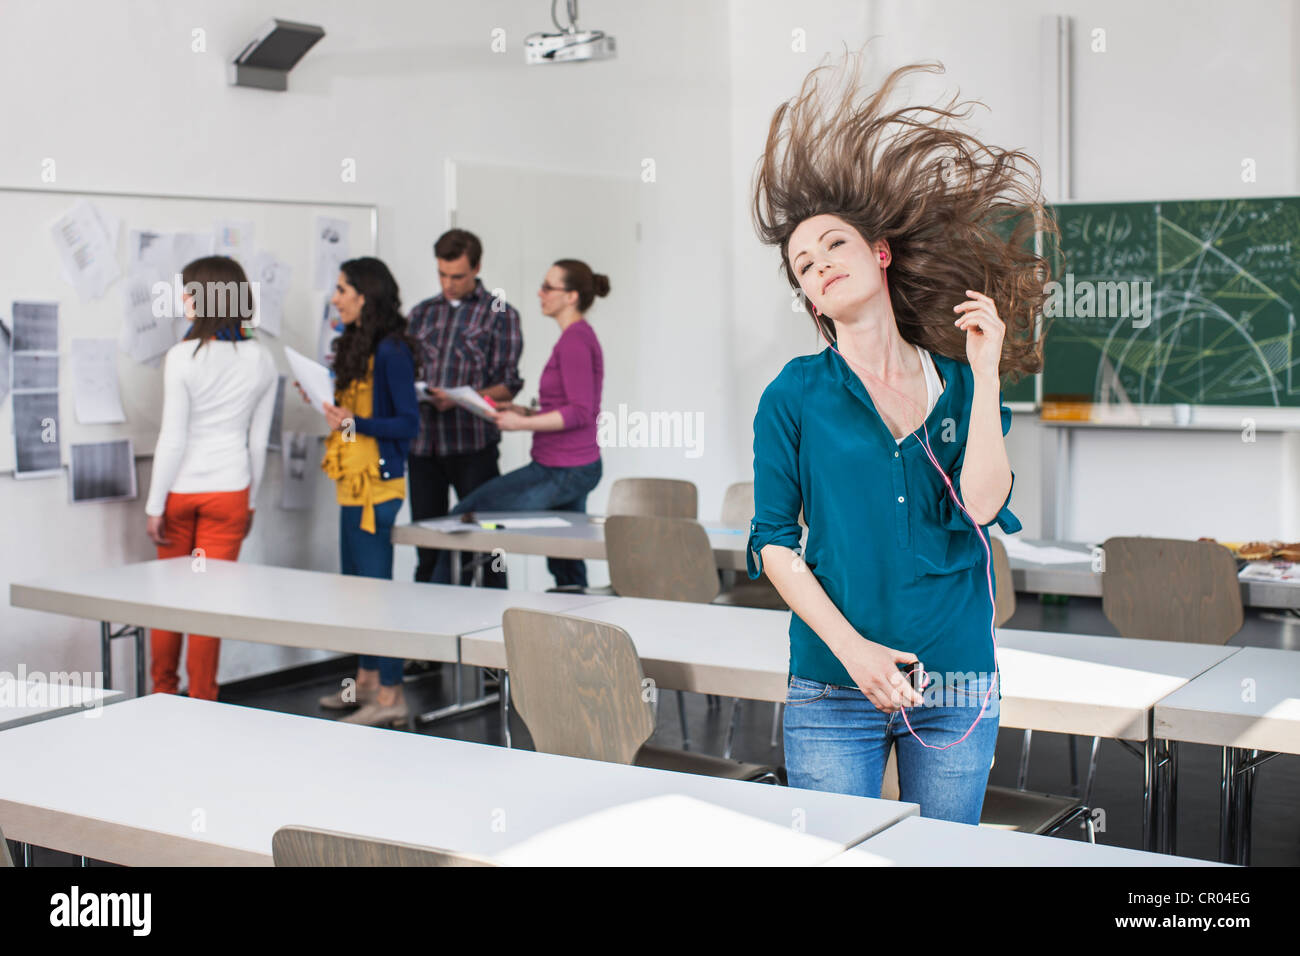 Student dancing to mp3 player in class - Stock Image